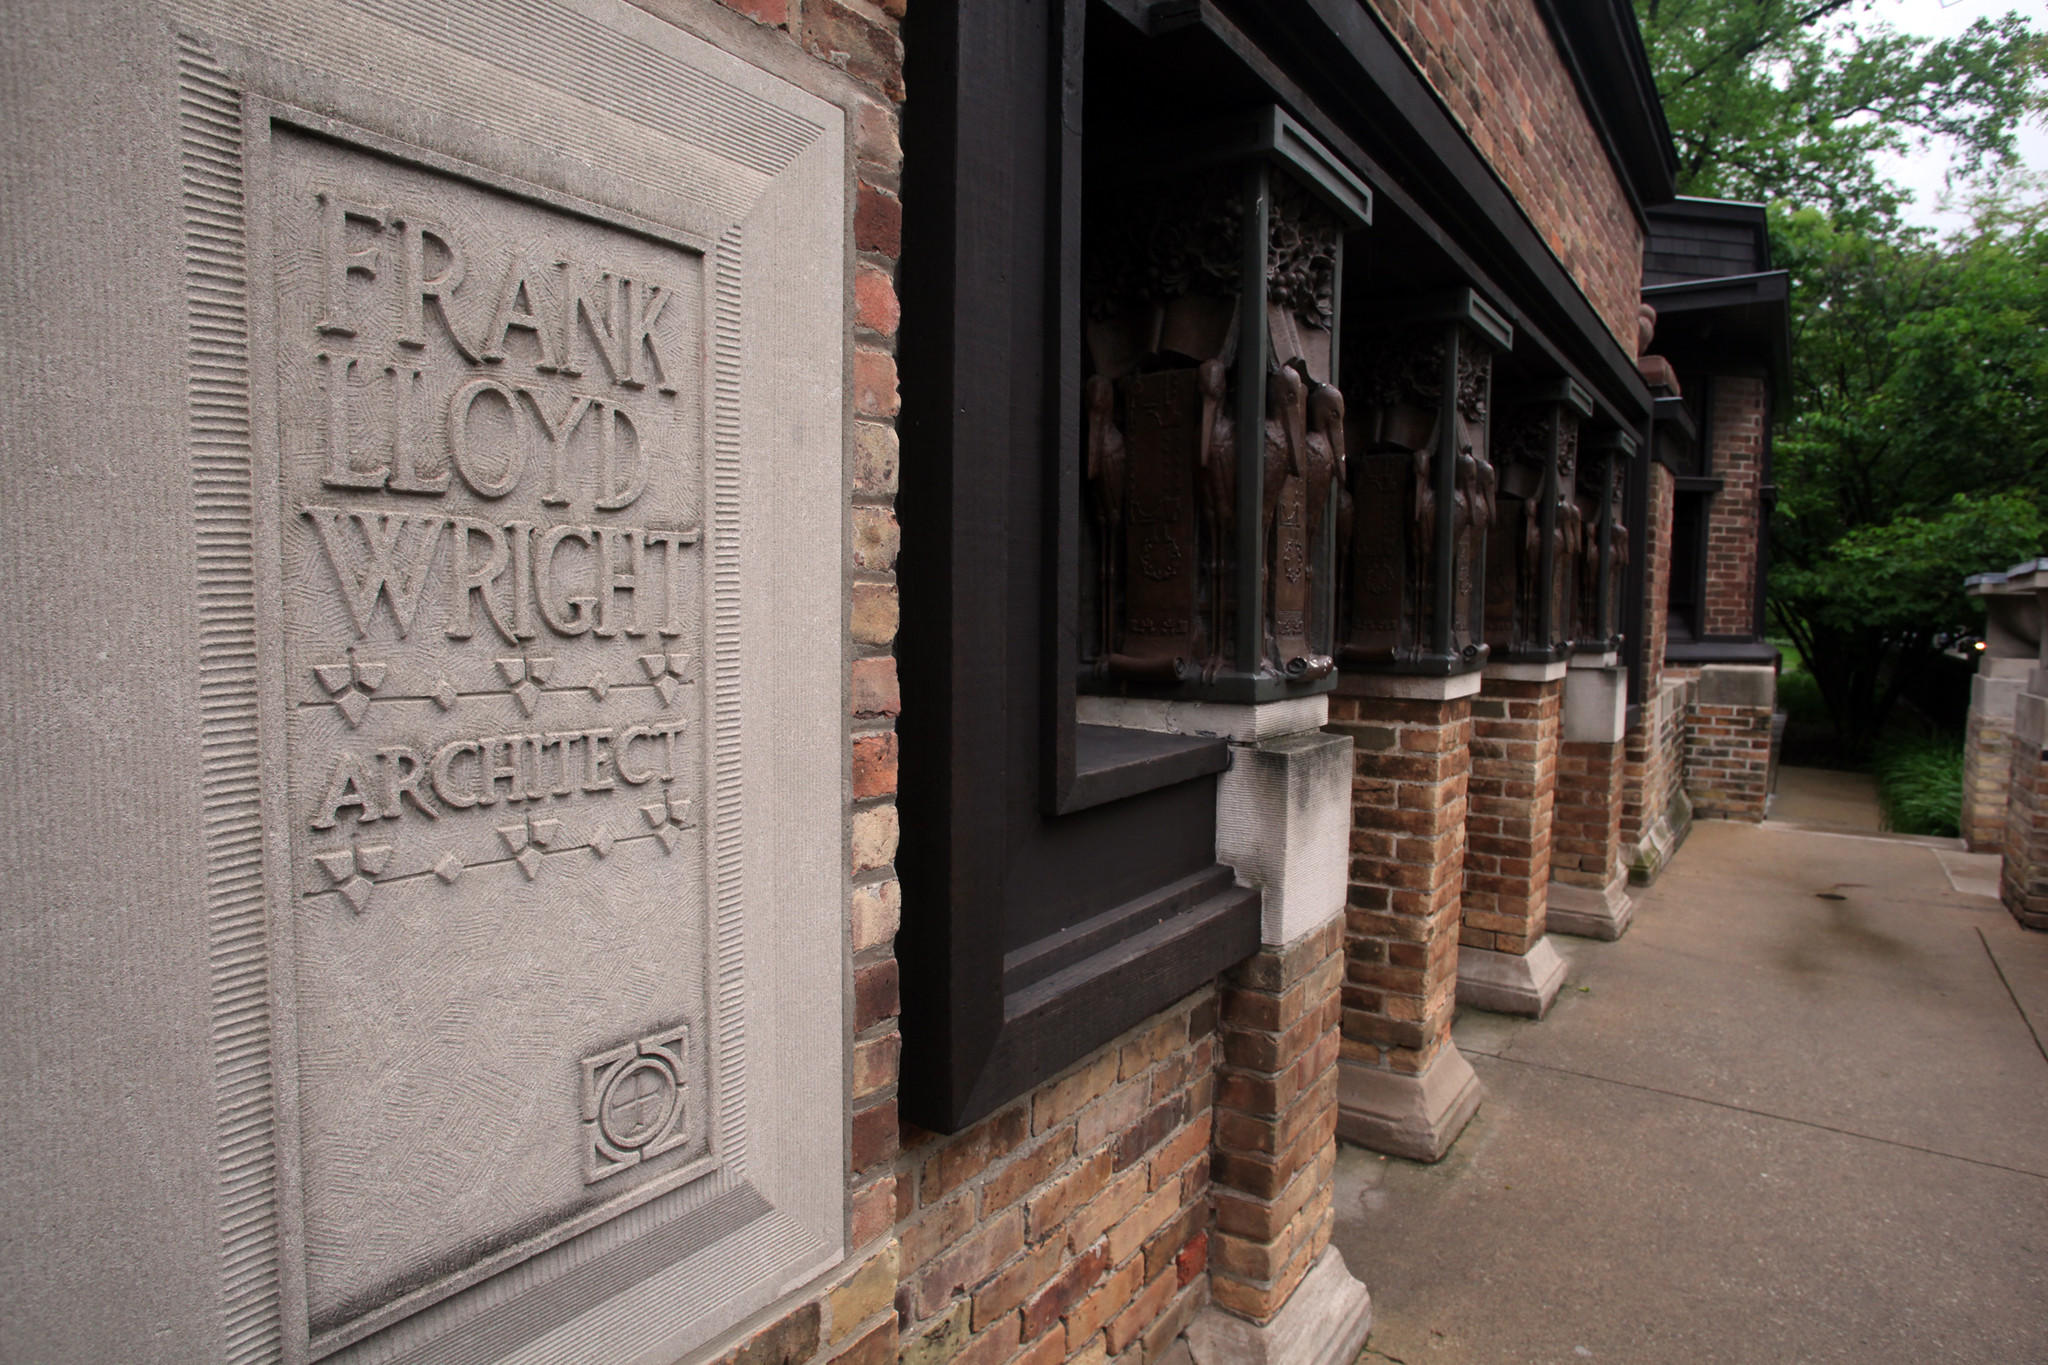 This is the exterior of the Frank Lloyd Wright studio in Oak Park.